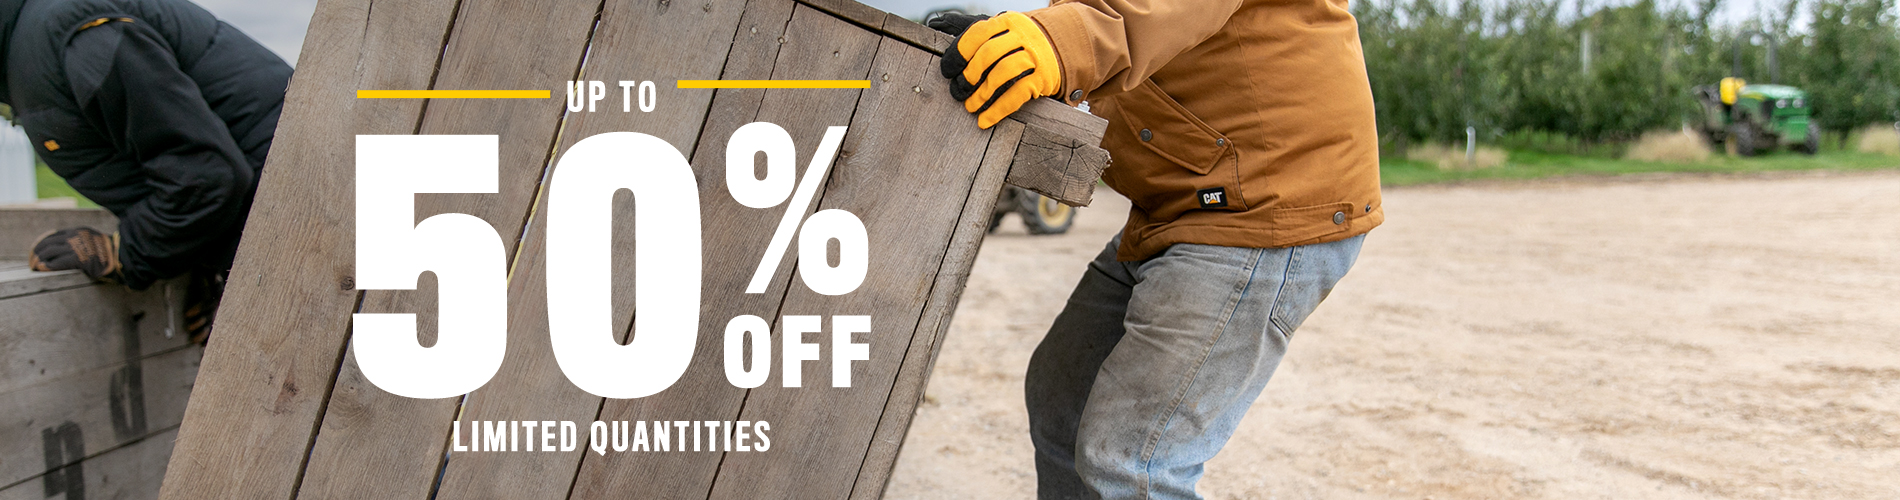 Up to 50% off limited quantities